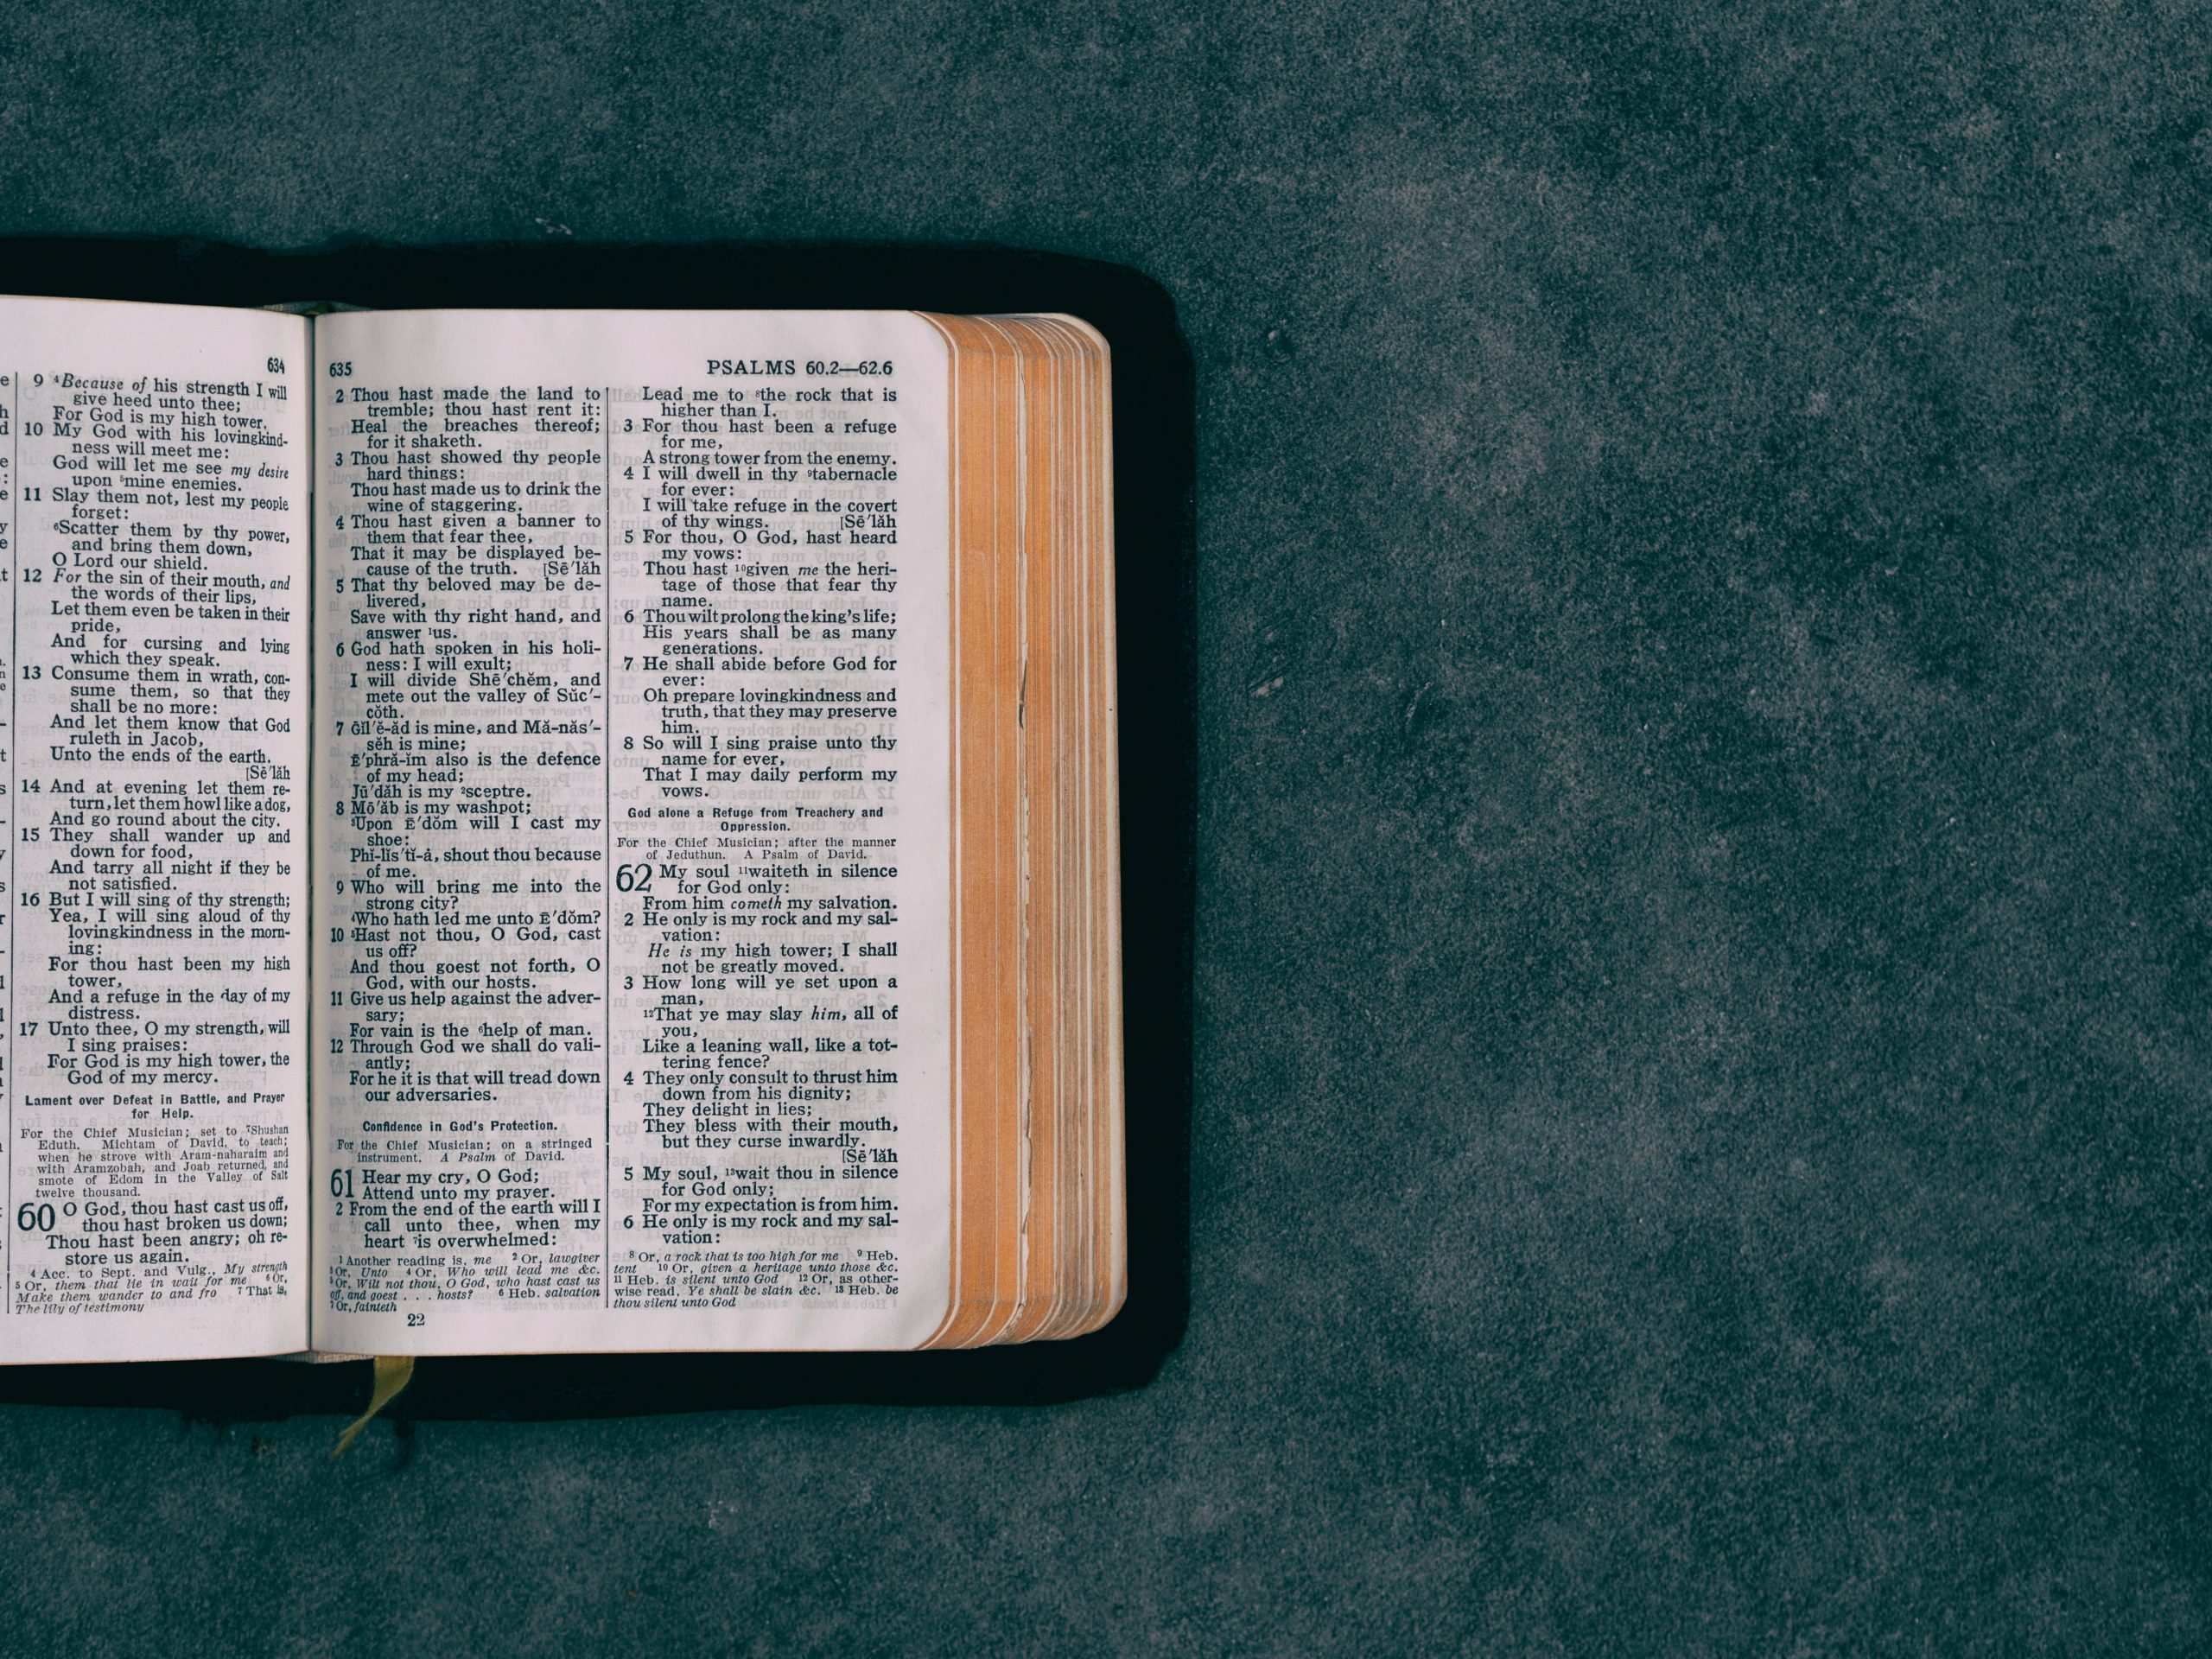 On Learning to Pray as God Wants Me to